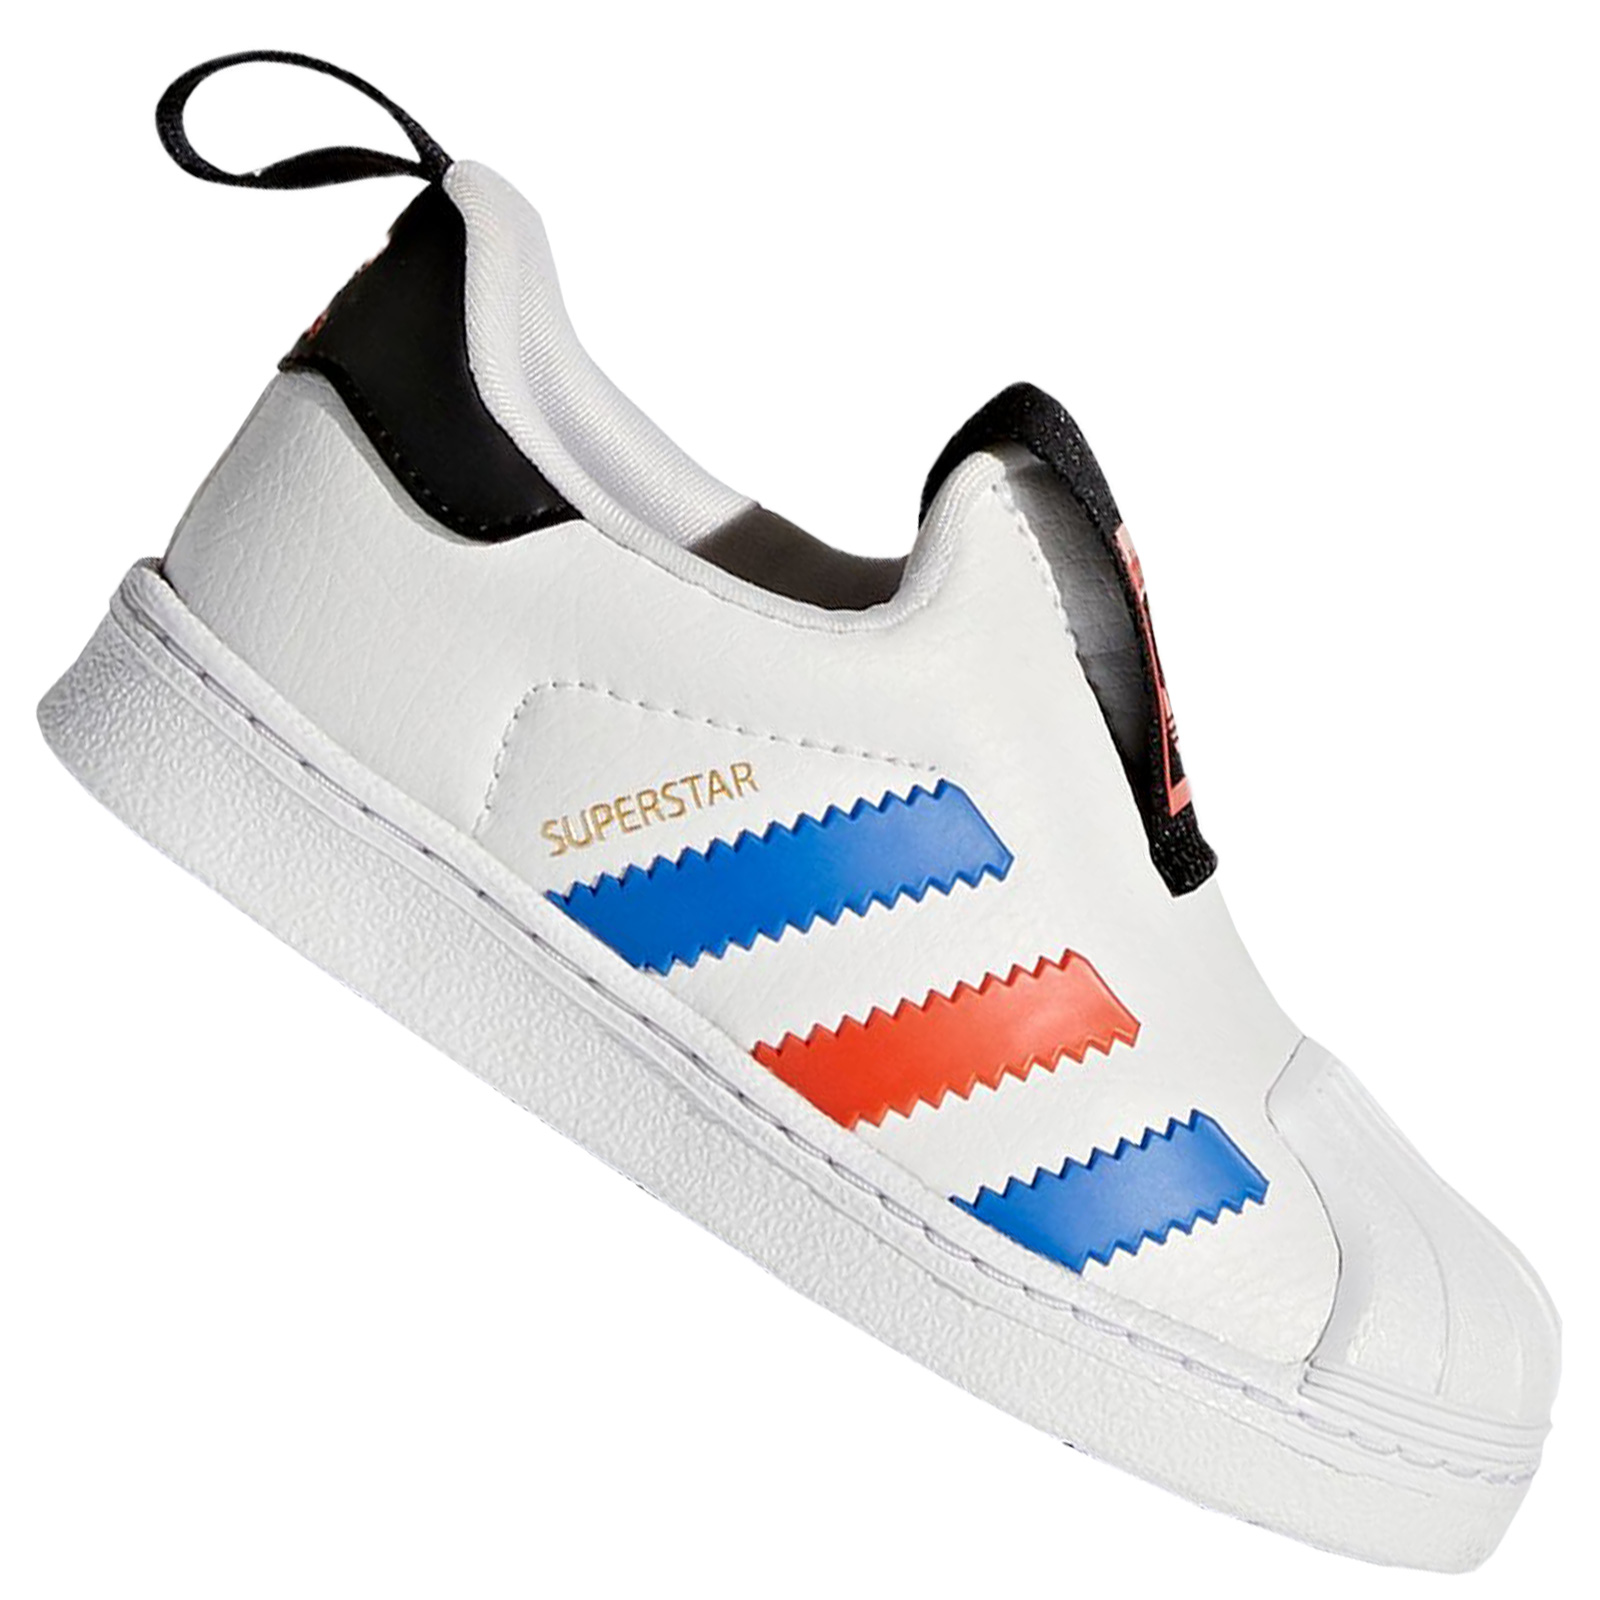 adidas superstar color hellblau